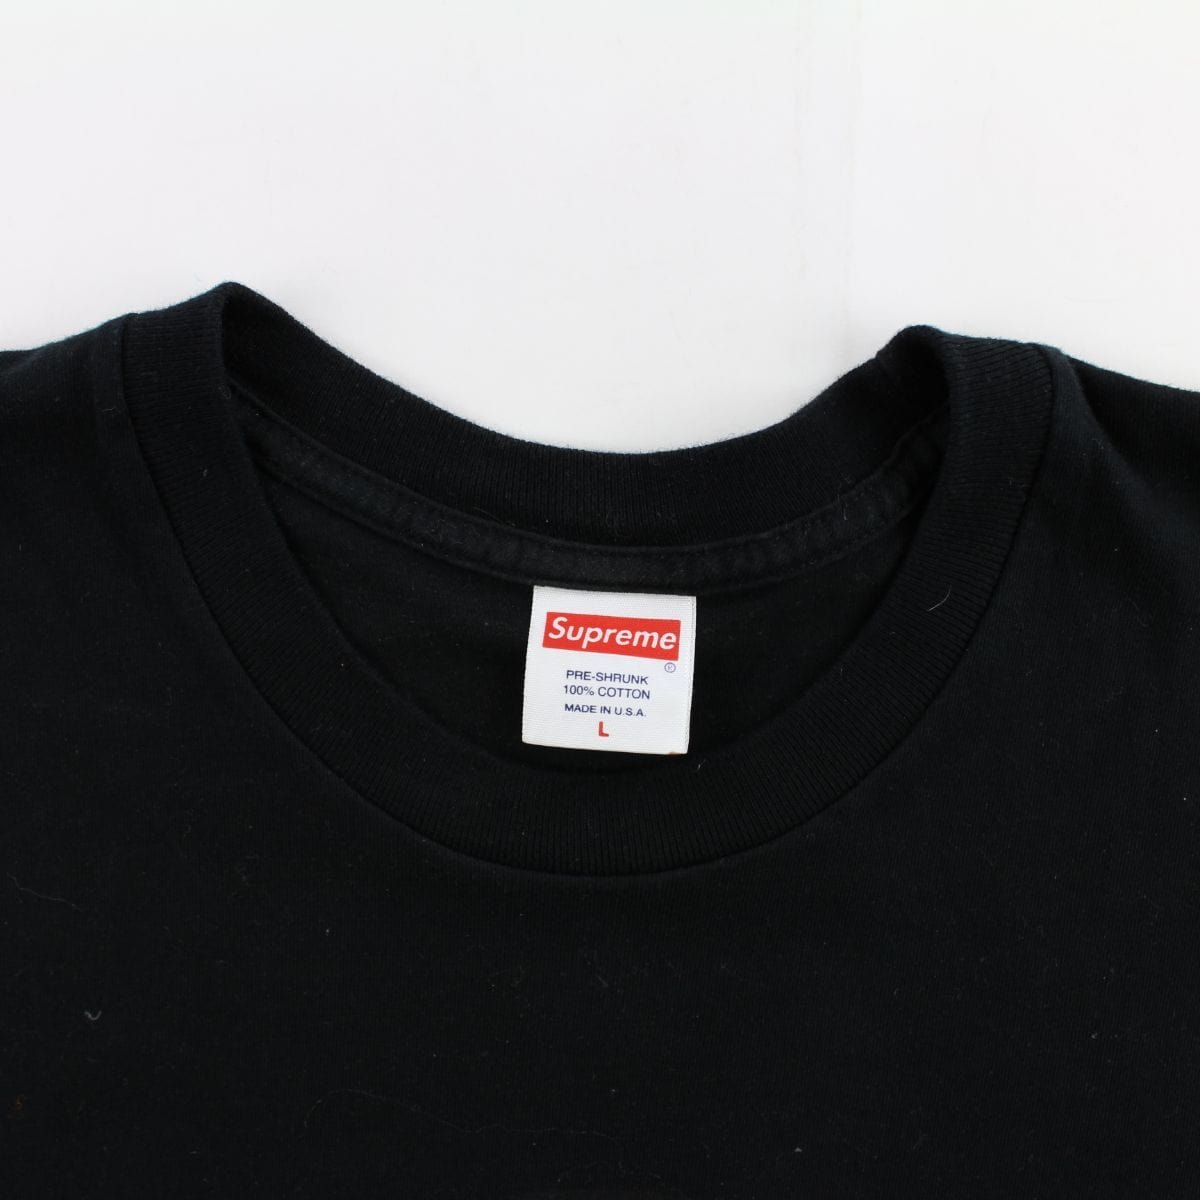 Supreme Life Sucks Die Tee Black - SaruGeneral